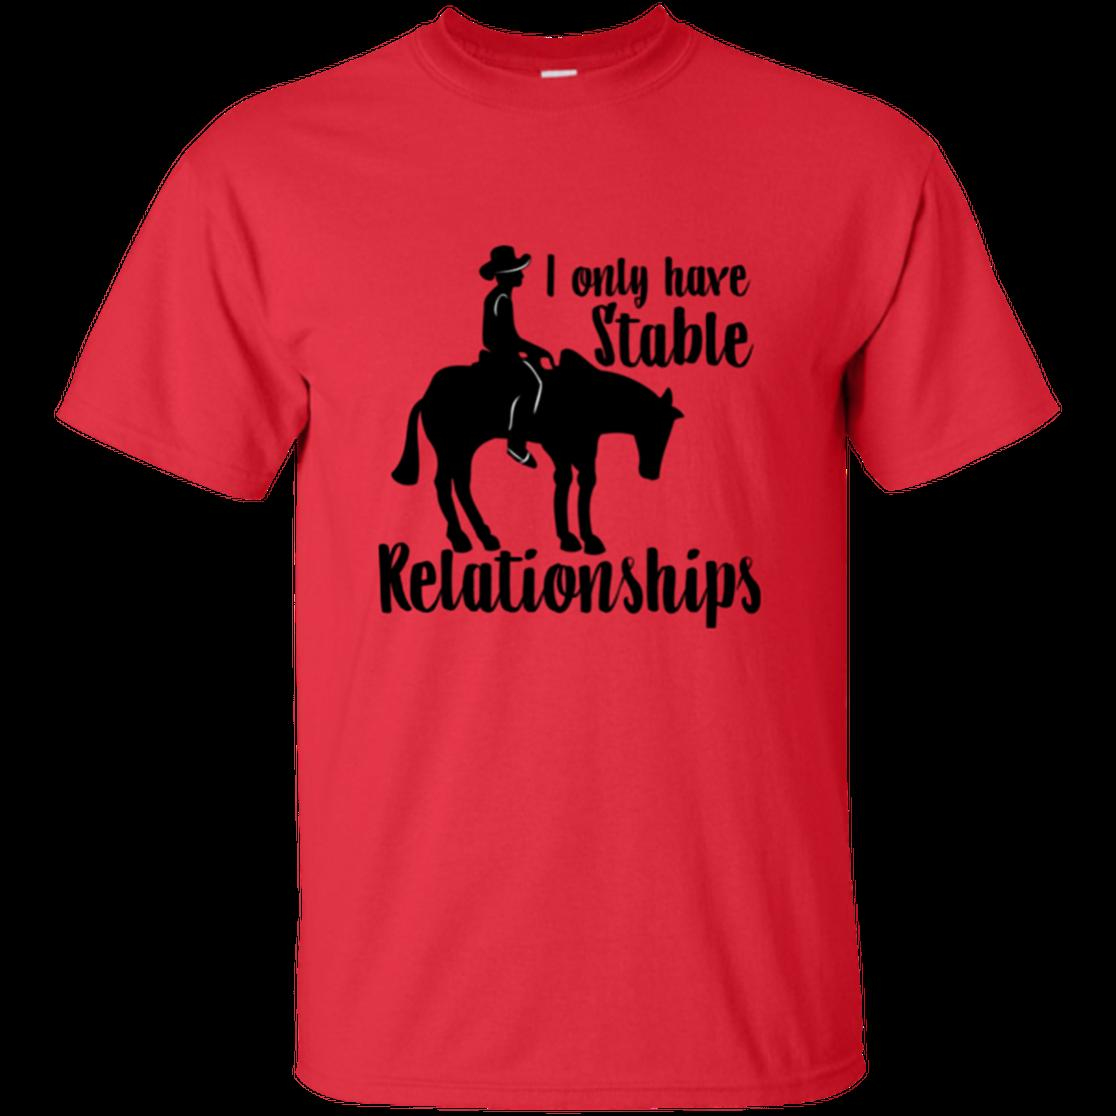 342a3b4c2 New Horseback Rider Stable Relationships Fashion Men Women 2018 3D T Shirt  Tee Jersey Print T Shirt T Shirts Funky Tee Shirt For Sale From Goodcup, ...